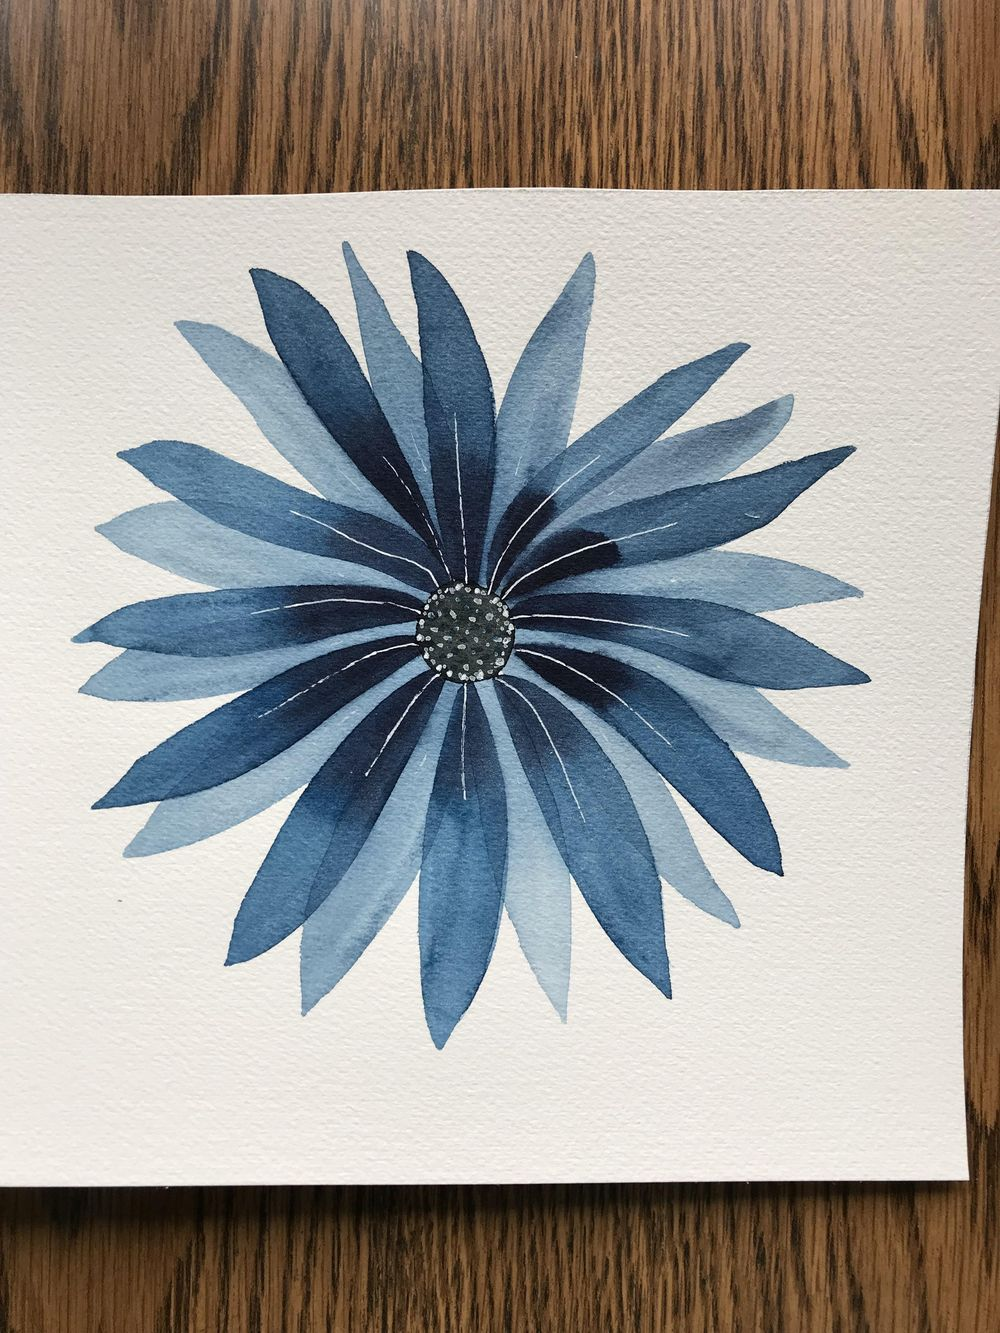 Modern Botanical Watercolor Paintings - image 4 - student project